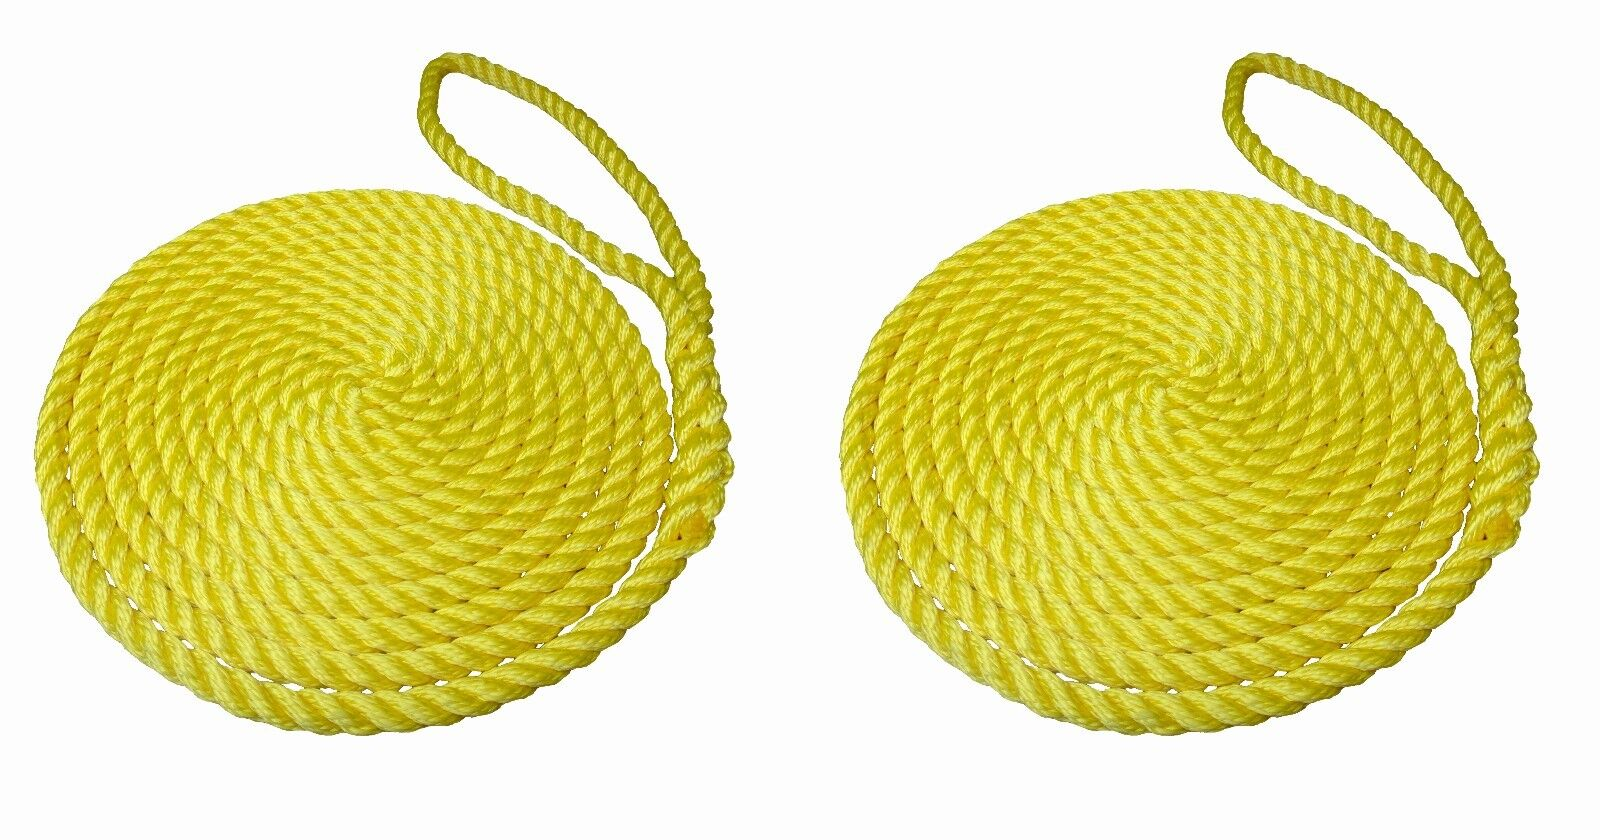 2 x 15 MTS OF 14MM YELLOW SOFTLINE MOORING ROPES   WARPS   LINES BOATS